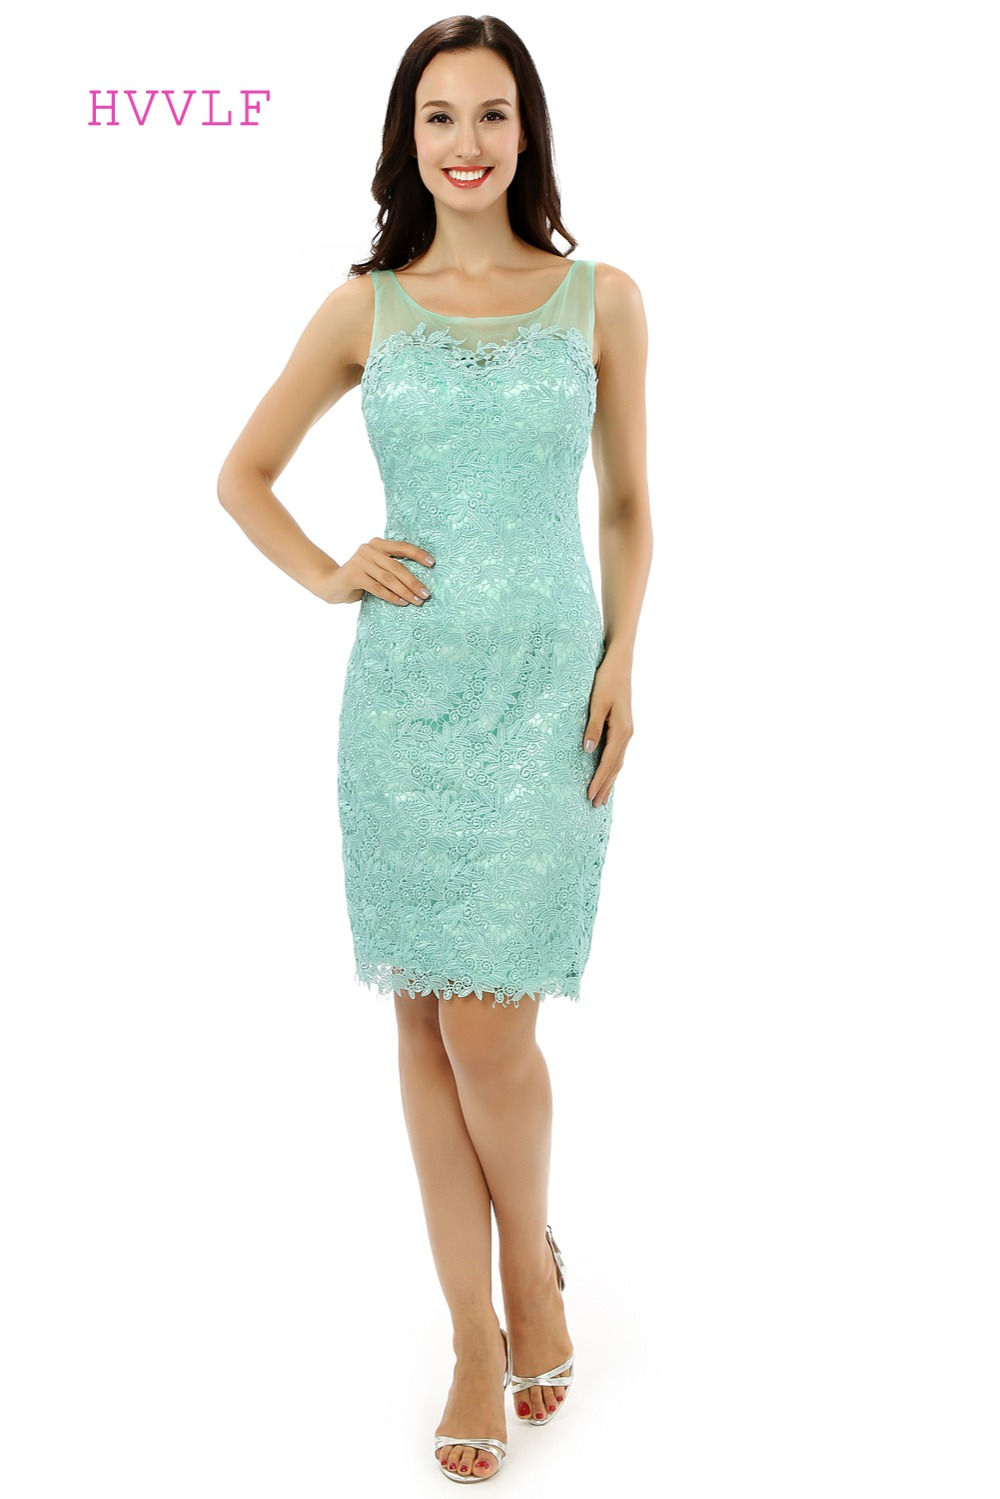 Weddings & Events Loyal Vintage 2019 Cocktail Dresses Sheath Scoop Knee Length Appliques Lace Mint Green Short Homecoming Dresses